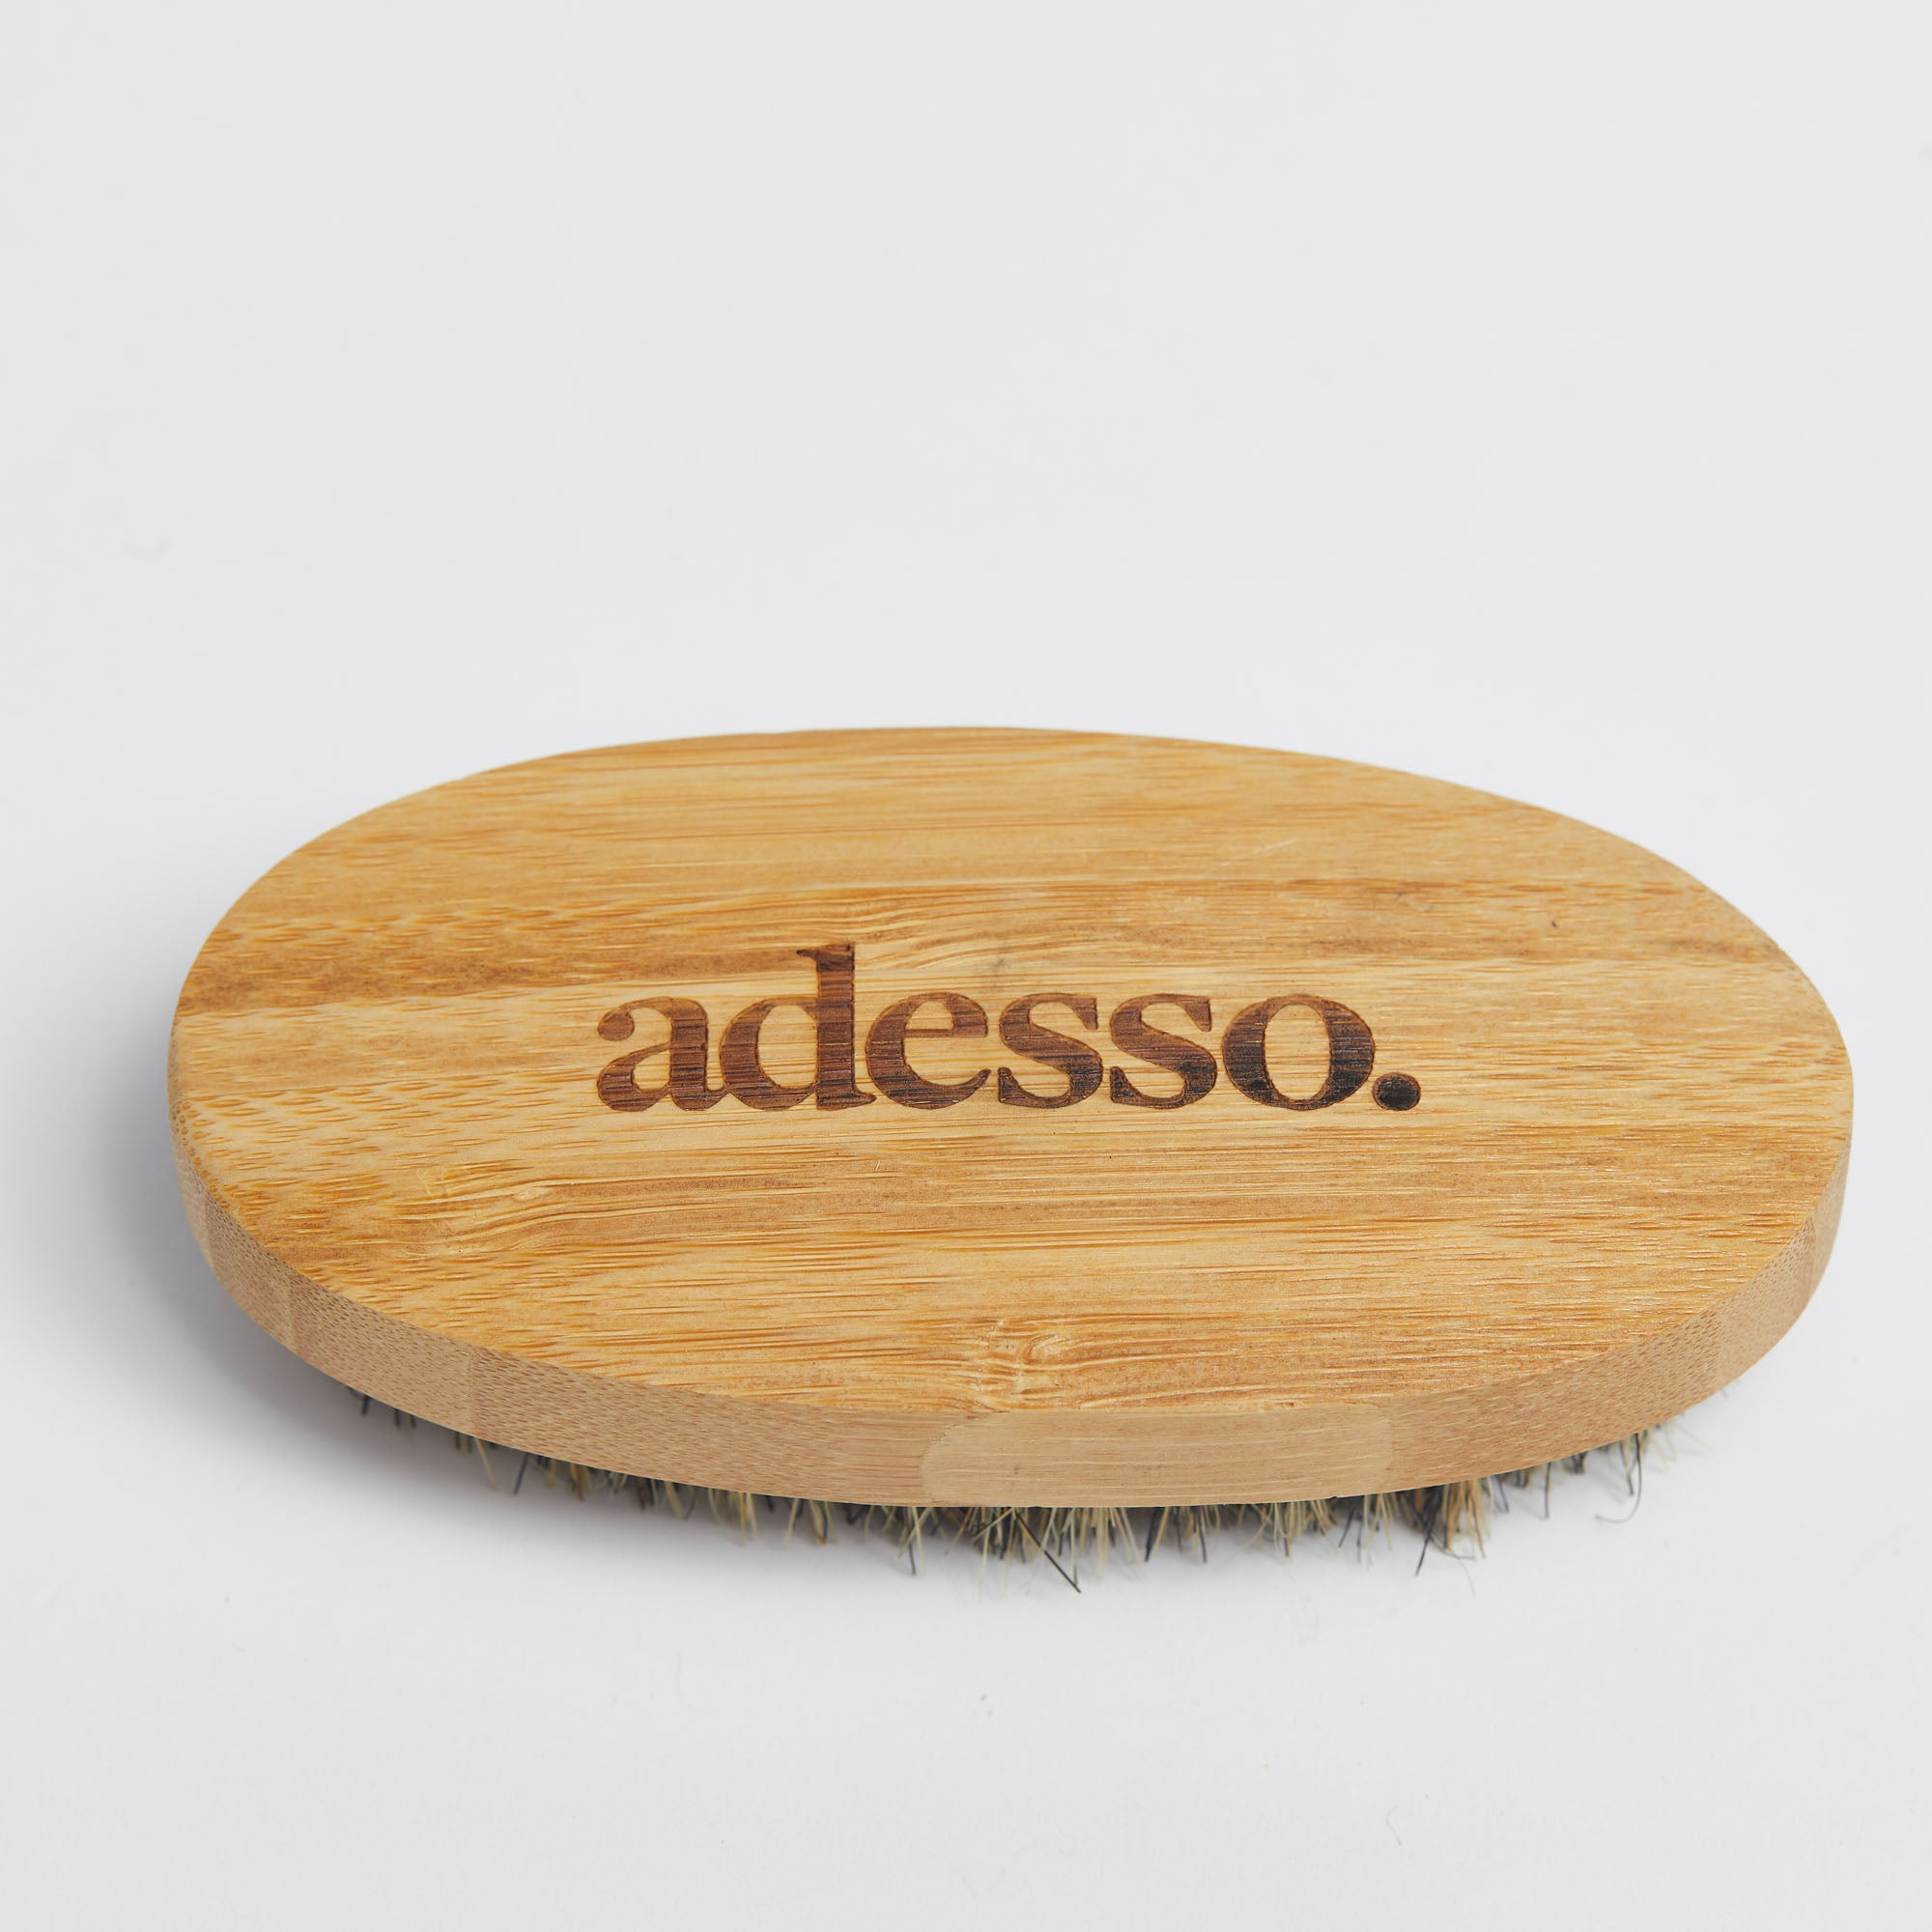 Adesso Beard Brush - Bamboo